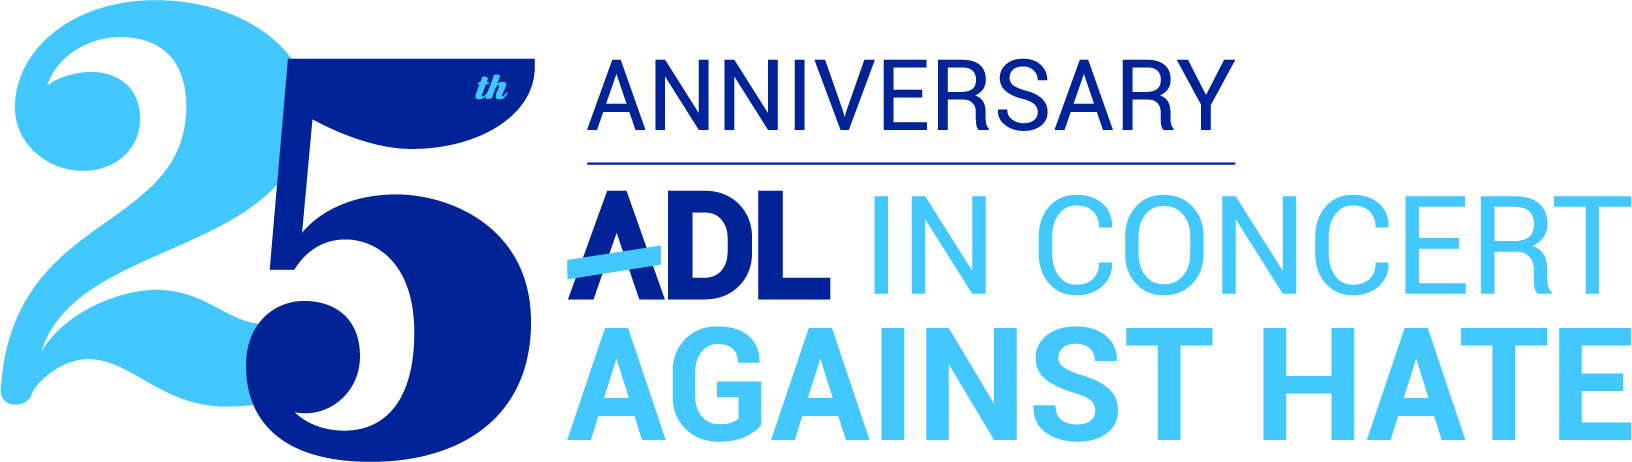 25th Annual ADL In Concert Against Hate